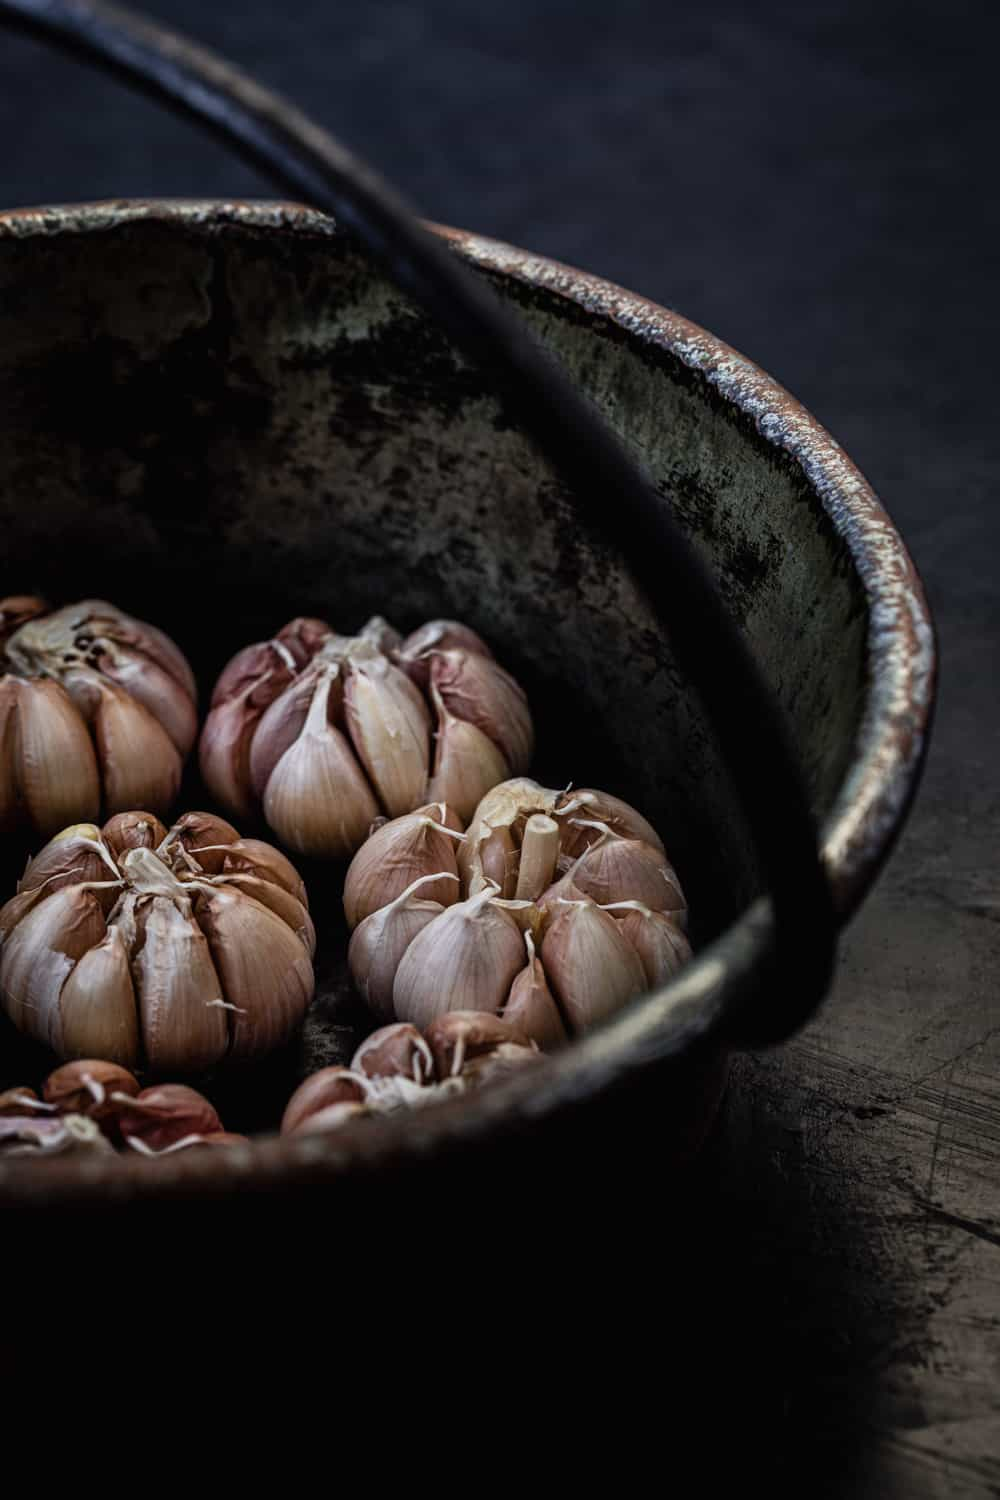 Ingredient shot of full heads of raw garlic in a pot, side angle.